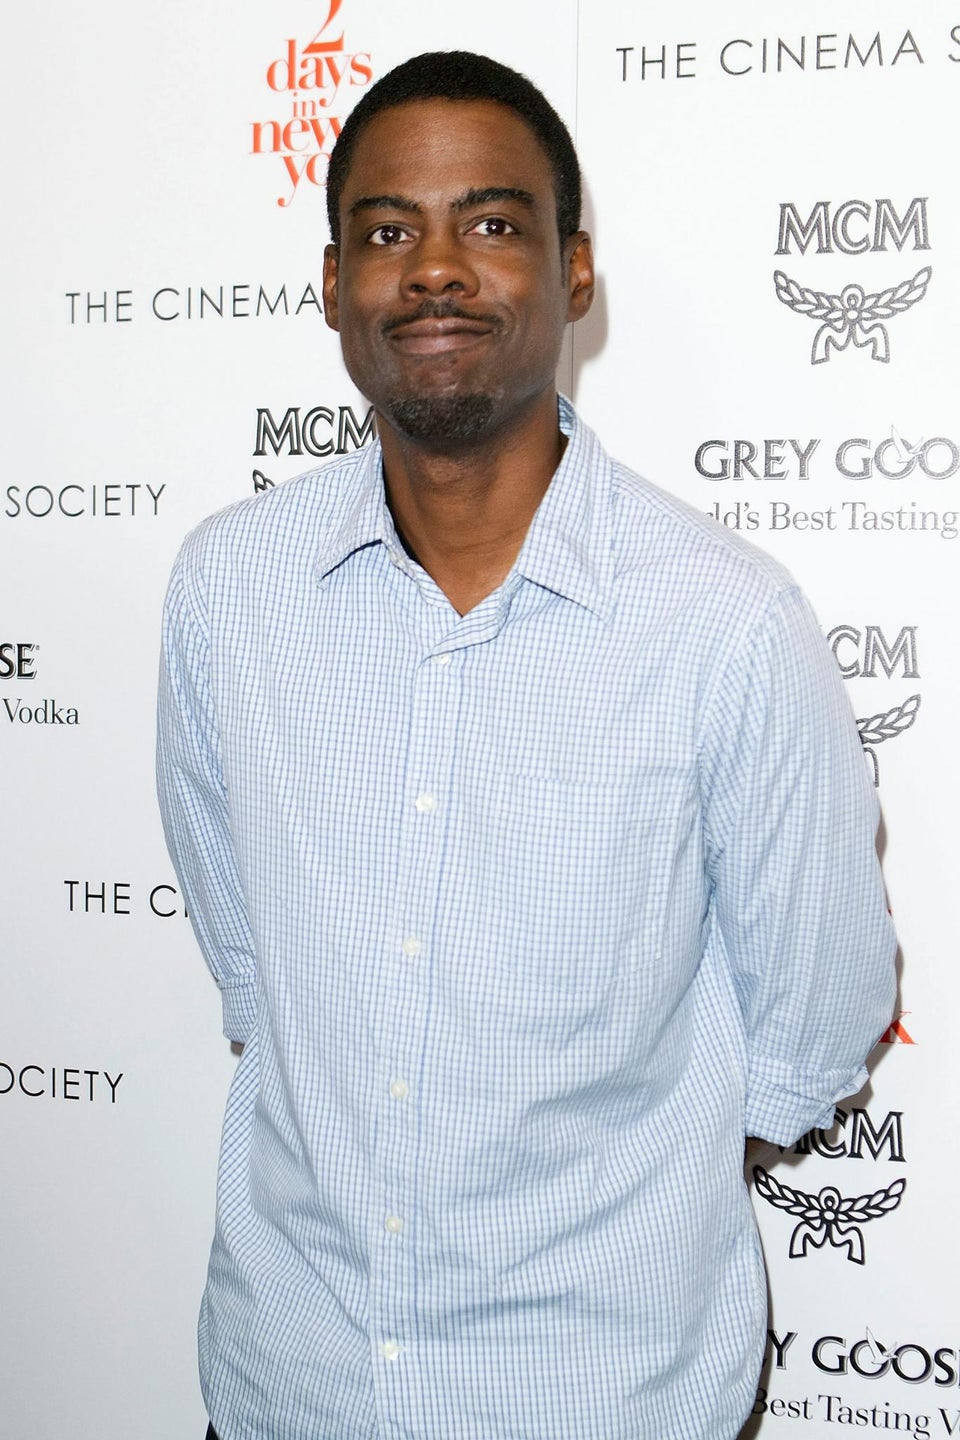 Chris Rock Joins Cast of 'Real Husbands of Hollywood'